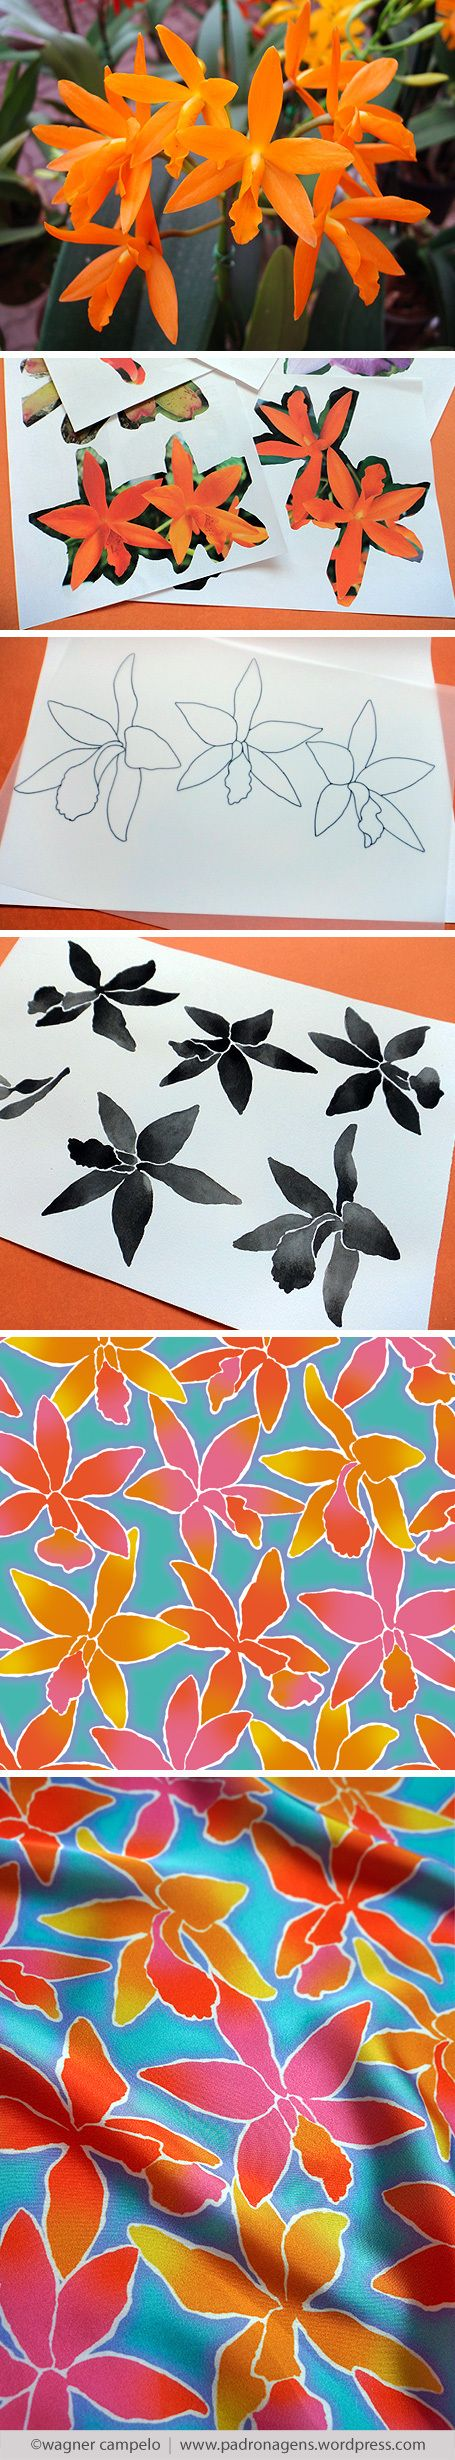 Creative process for prints from photos   Orchids pattern.